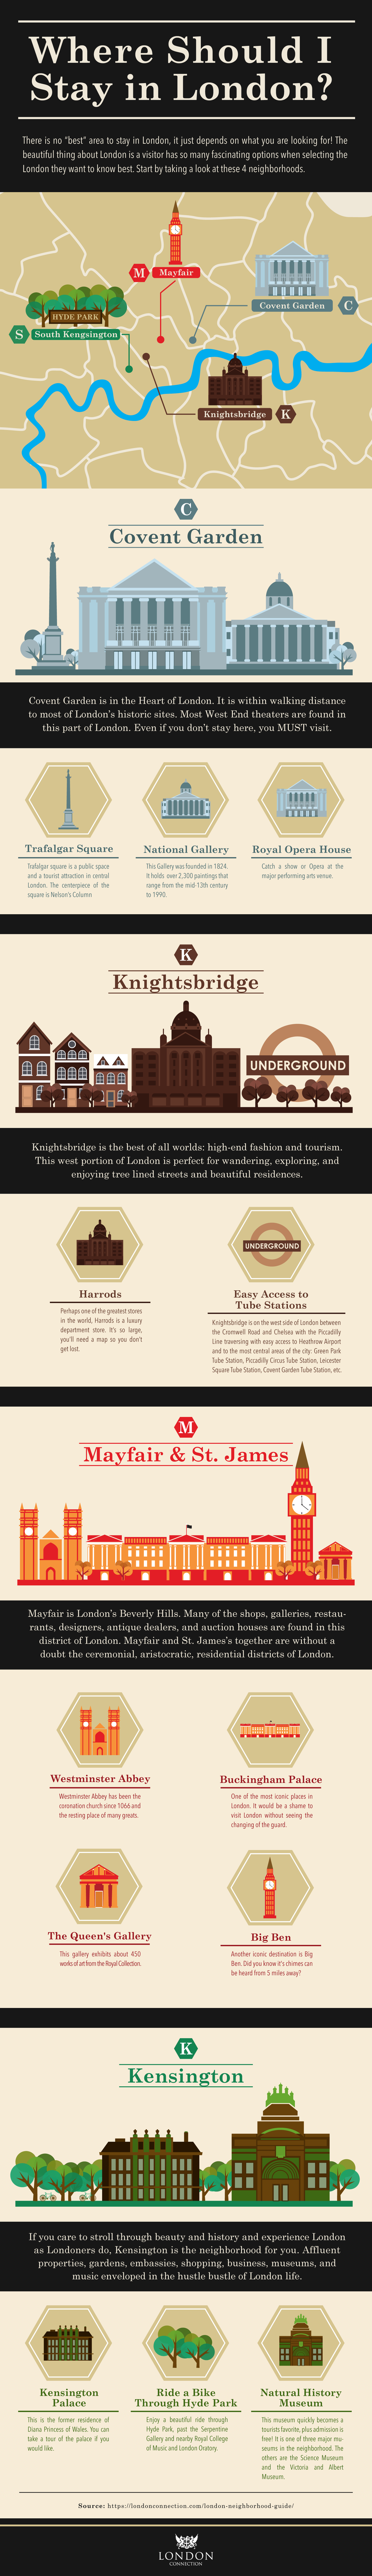 Most Suitable Neighborhood In London For You - Infographic